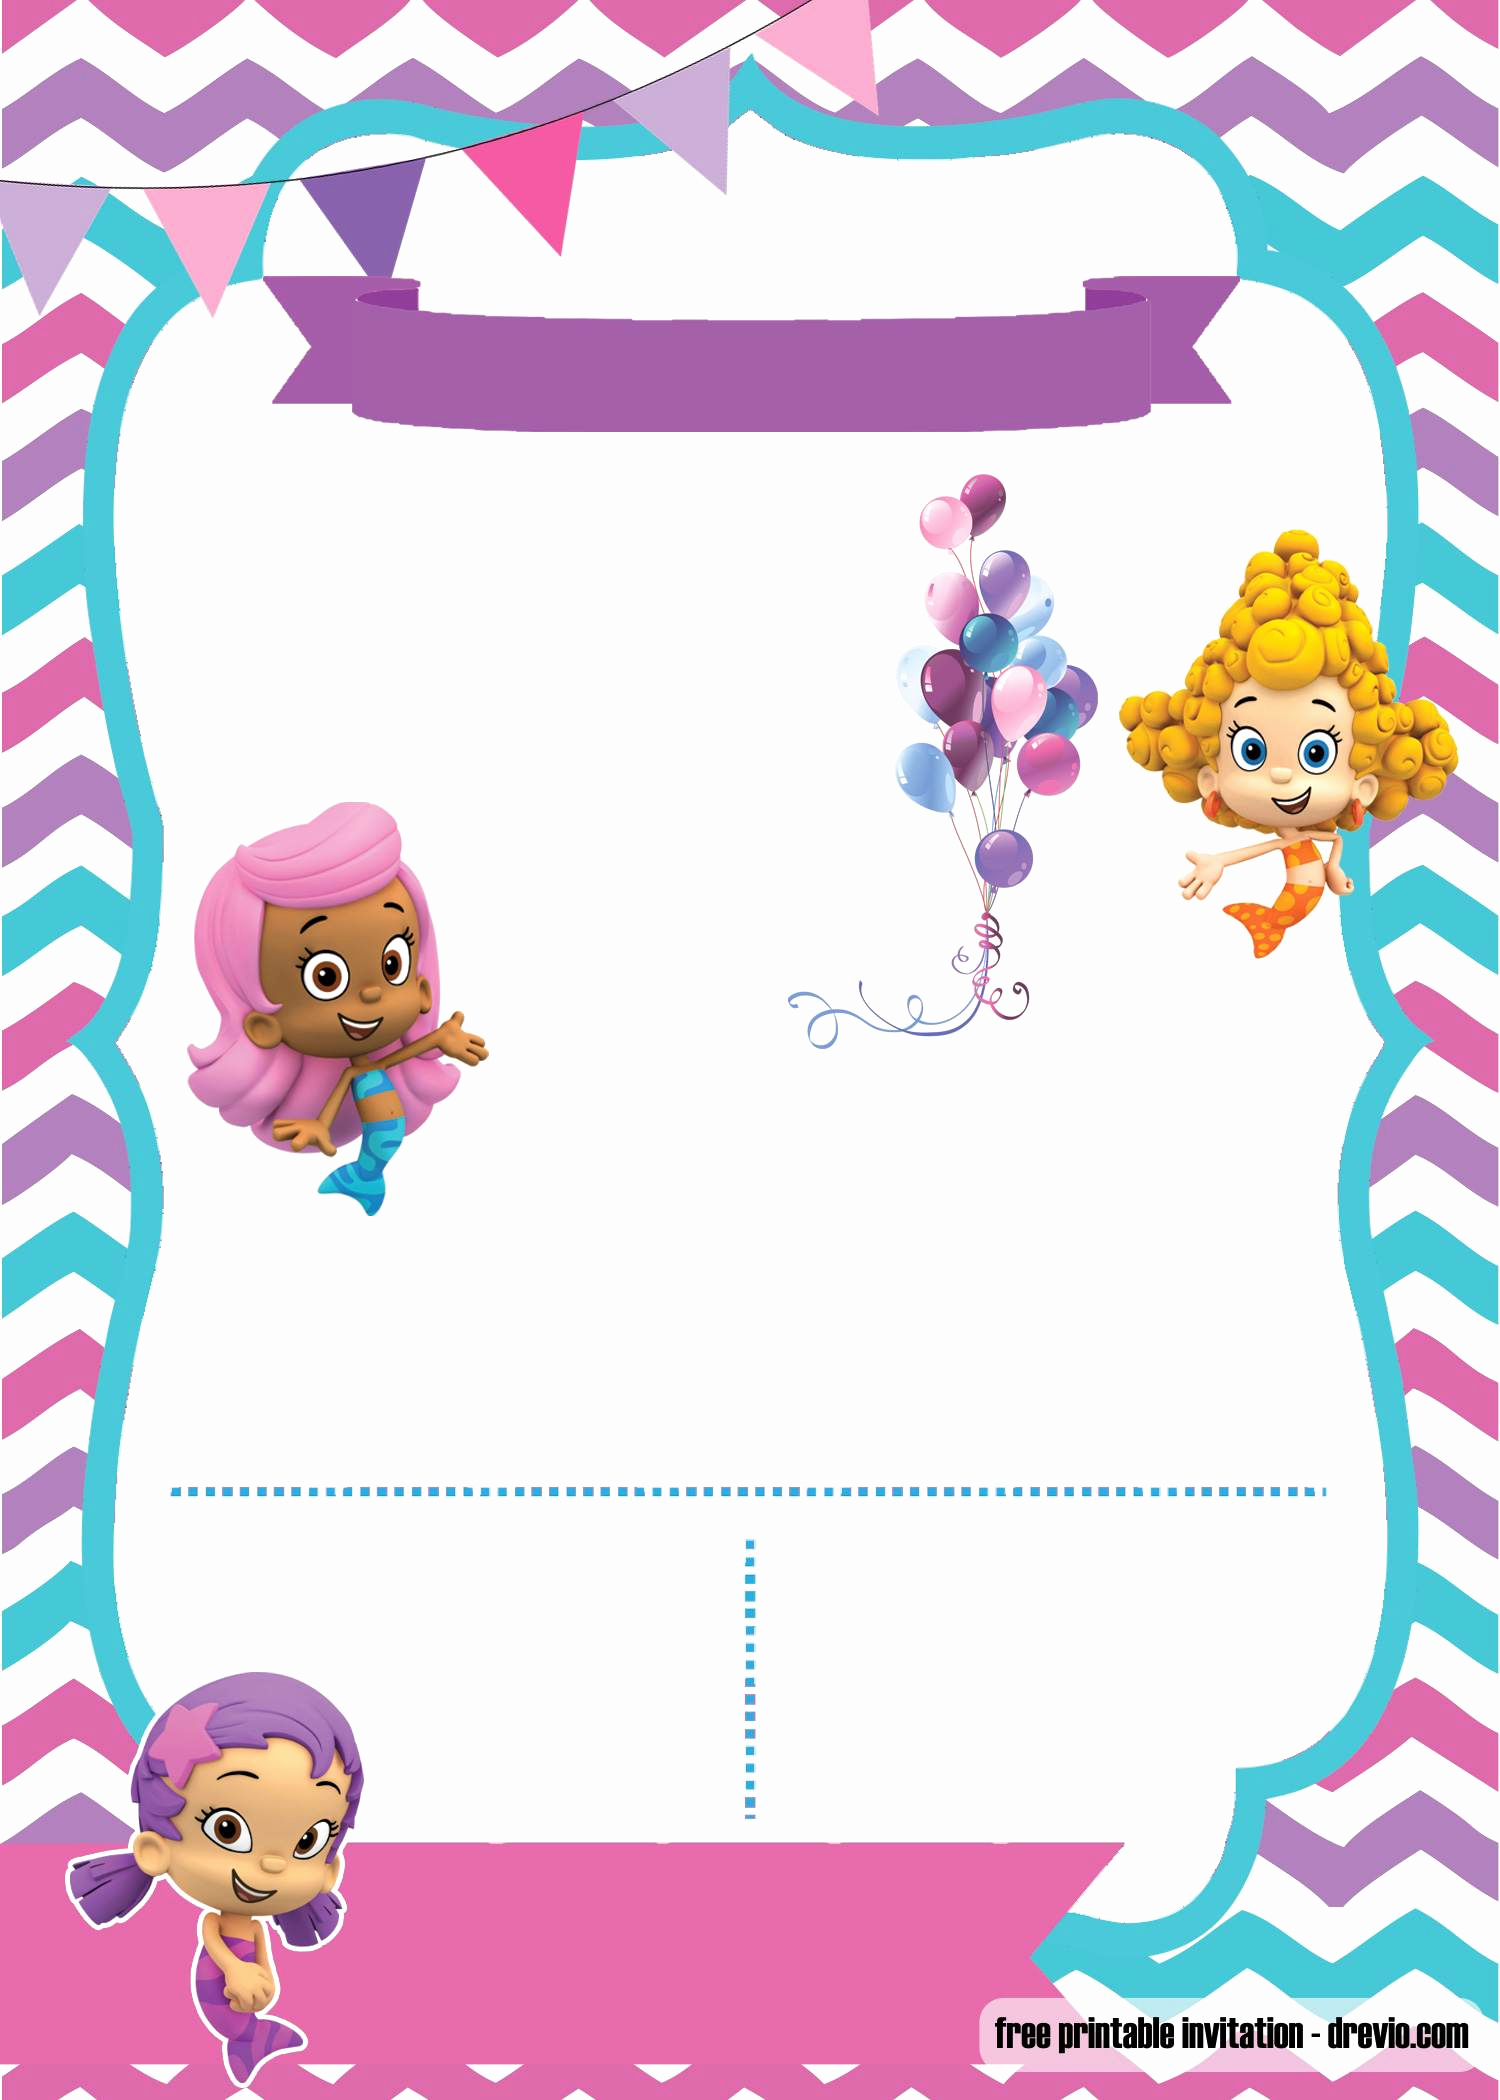 Bubble Guppies Invitation Template Free Unique Free Printable Bubble Guppies Invitation Template